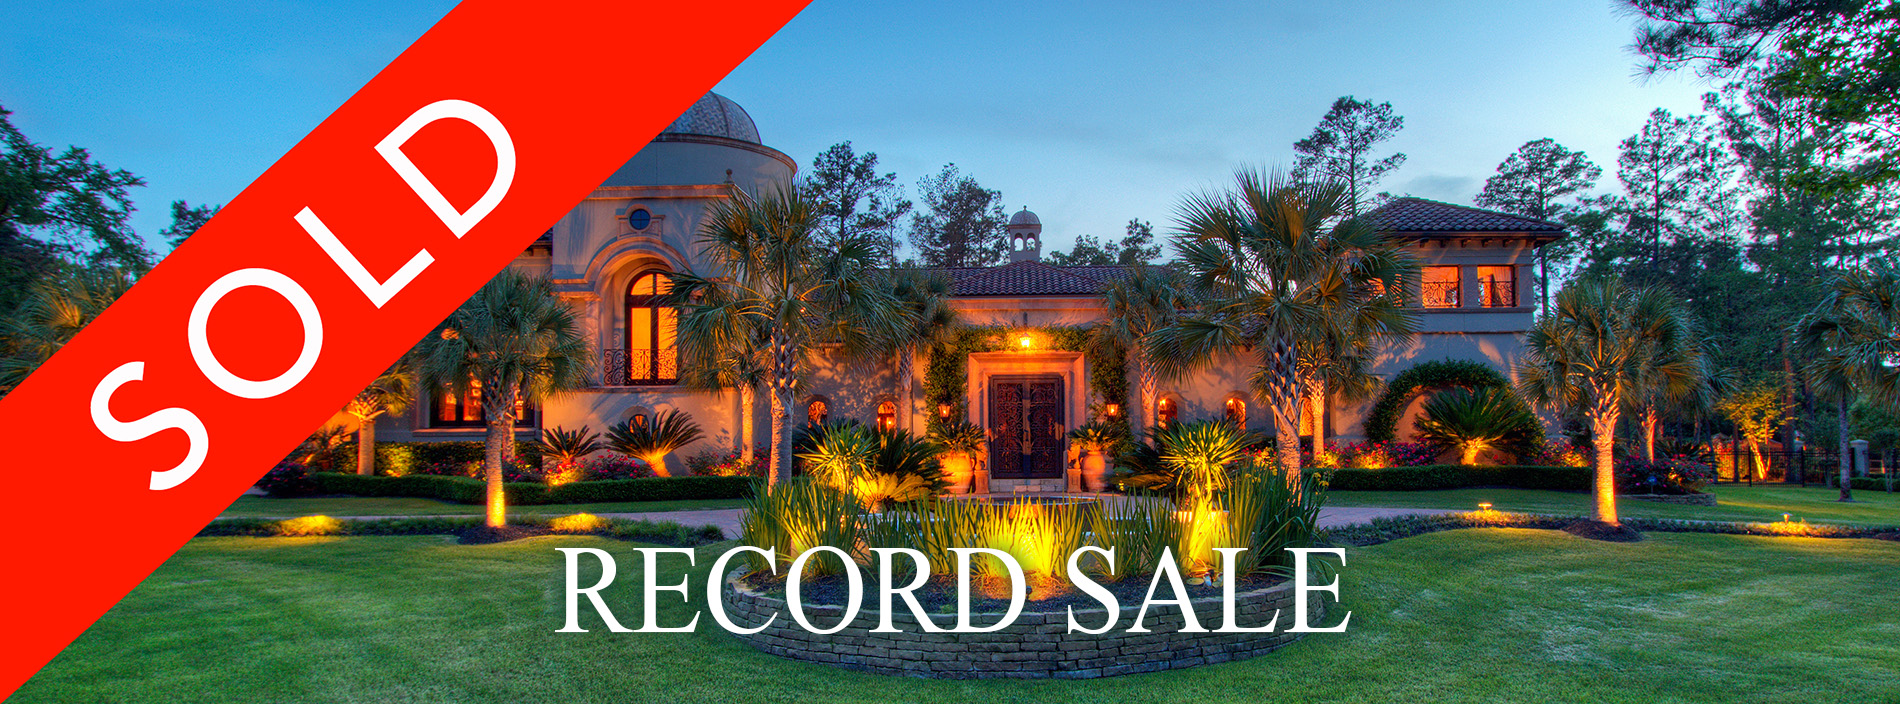 Luxury No Reserve Auction Of Stunning Estate Continues Supreme Auctionsu0027  Dominance Within The Luxury Real Estate Auction Industry